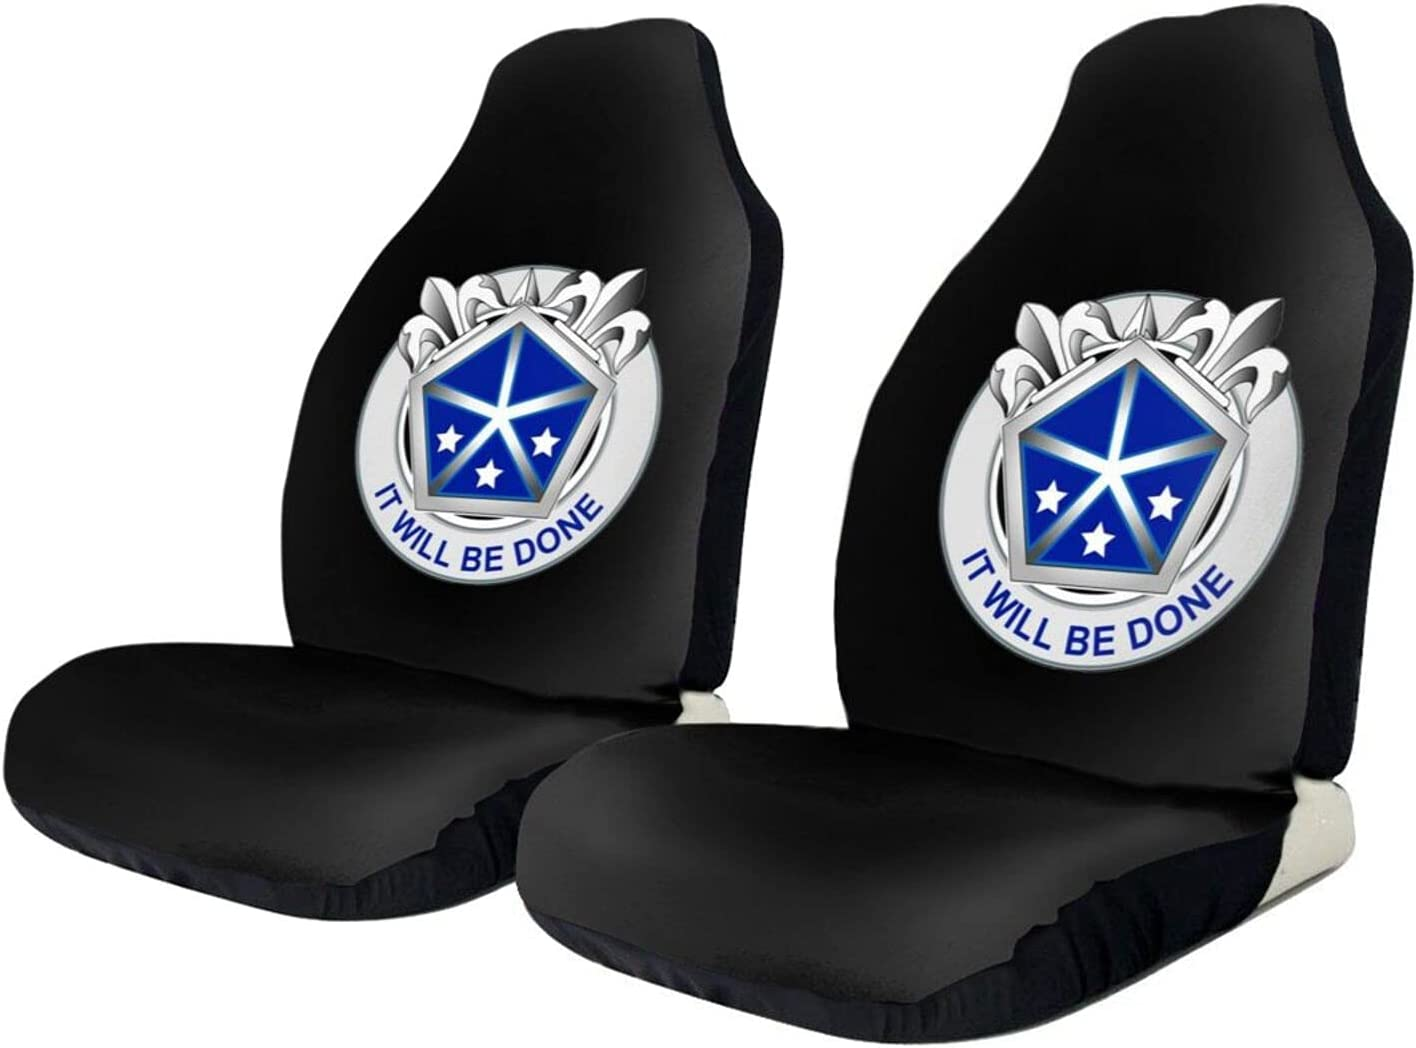 V Very popular Corps Car Seat Cover Protector 2 Limited time cheap sale Decoration Set Piece Univ